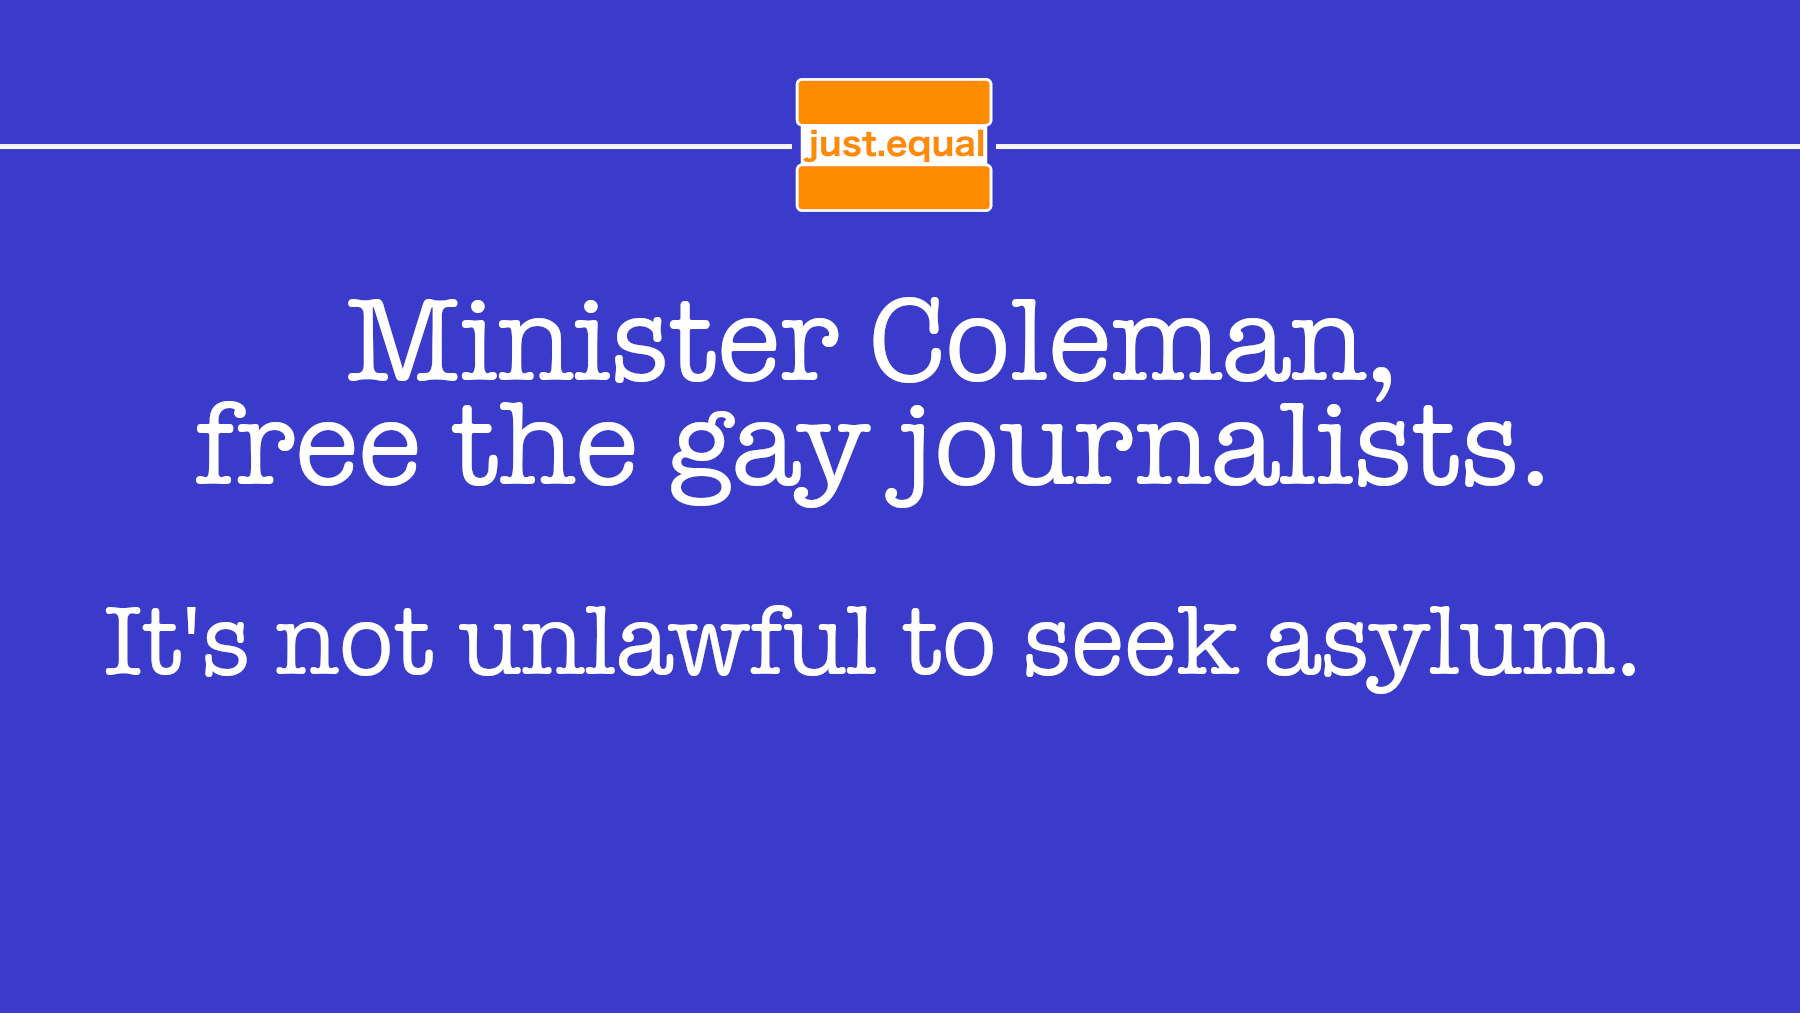 20191116_Free_The_Gay_Journalists.png